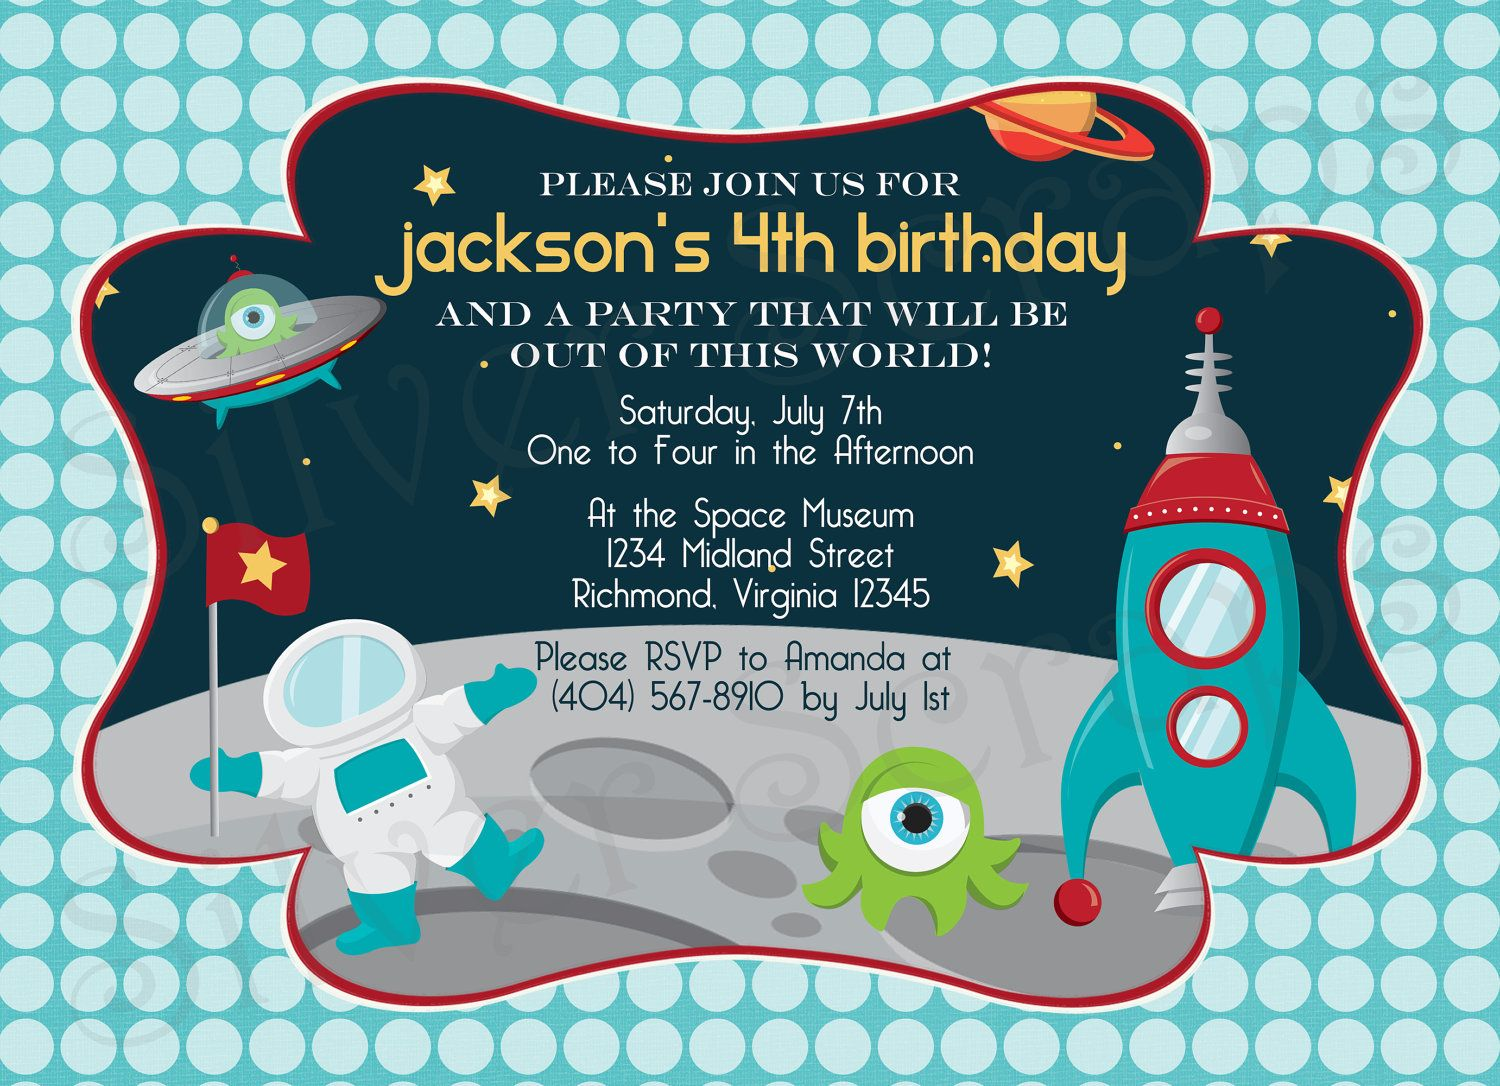 Outer space custom digital birthday party invitation astronaut outer space custom digital birthday party invitation astronaut spaceship alien ufo monicamarmolfo Image collections